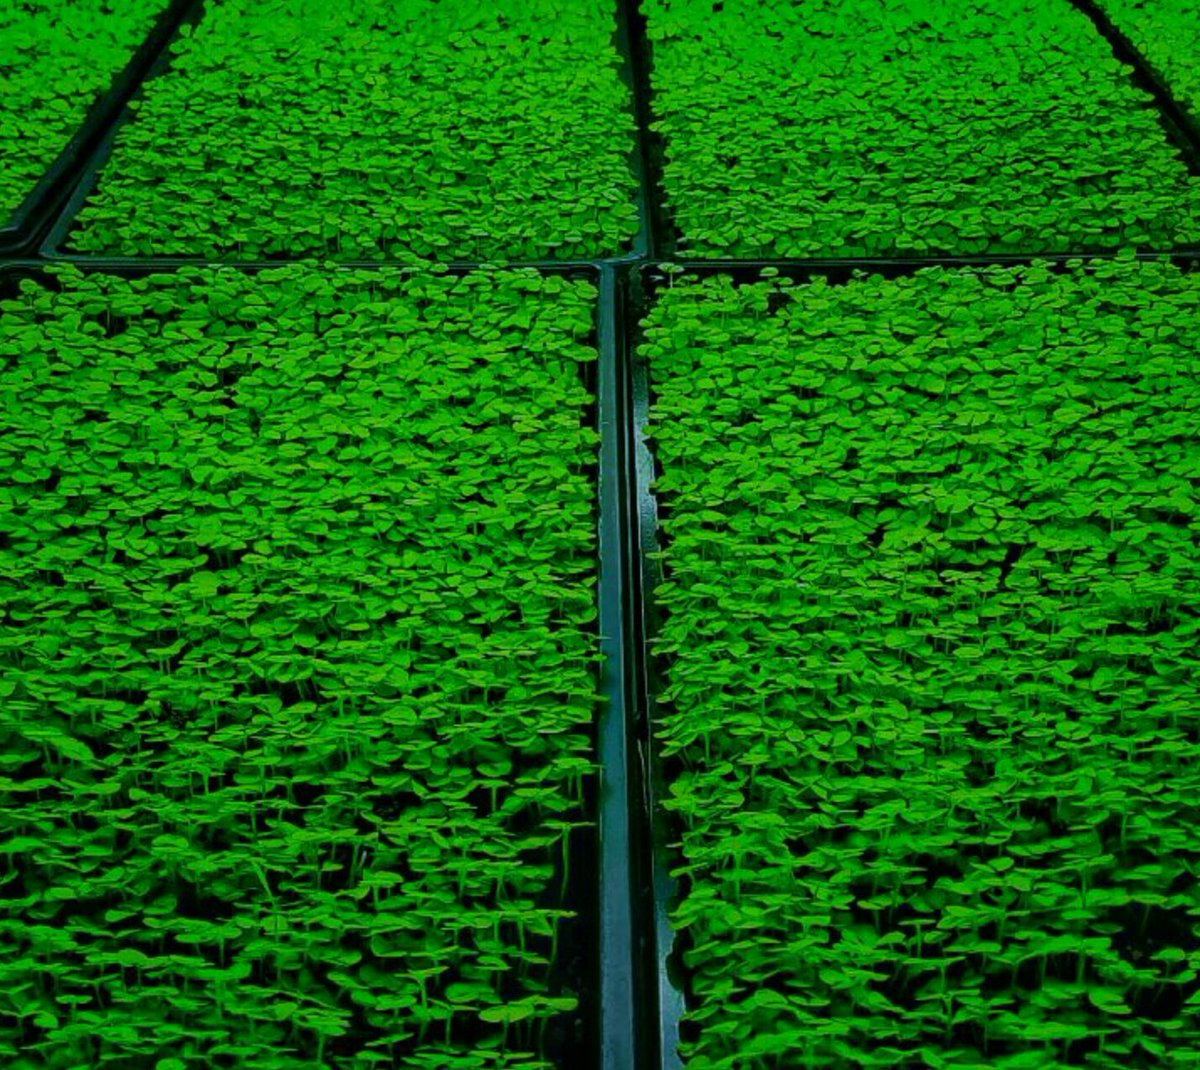 ICO #WorldClass #microgreen  Basil. Makes the best pesto ever. #foodie #gastronomy #cuisine #nutrition #cleaneating #nongmo #organic #vegan<br>http://pic.twitter.com/qKesZSYphA